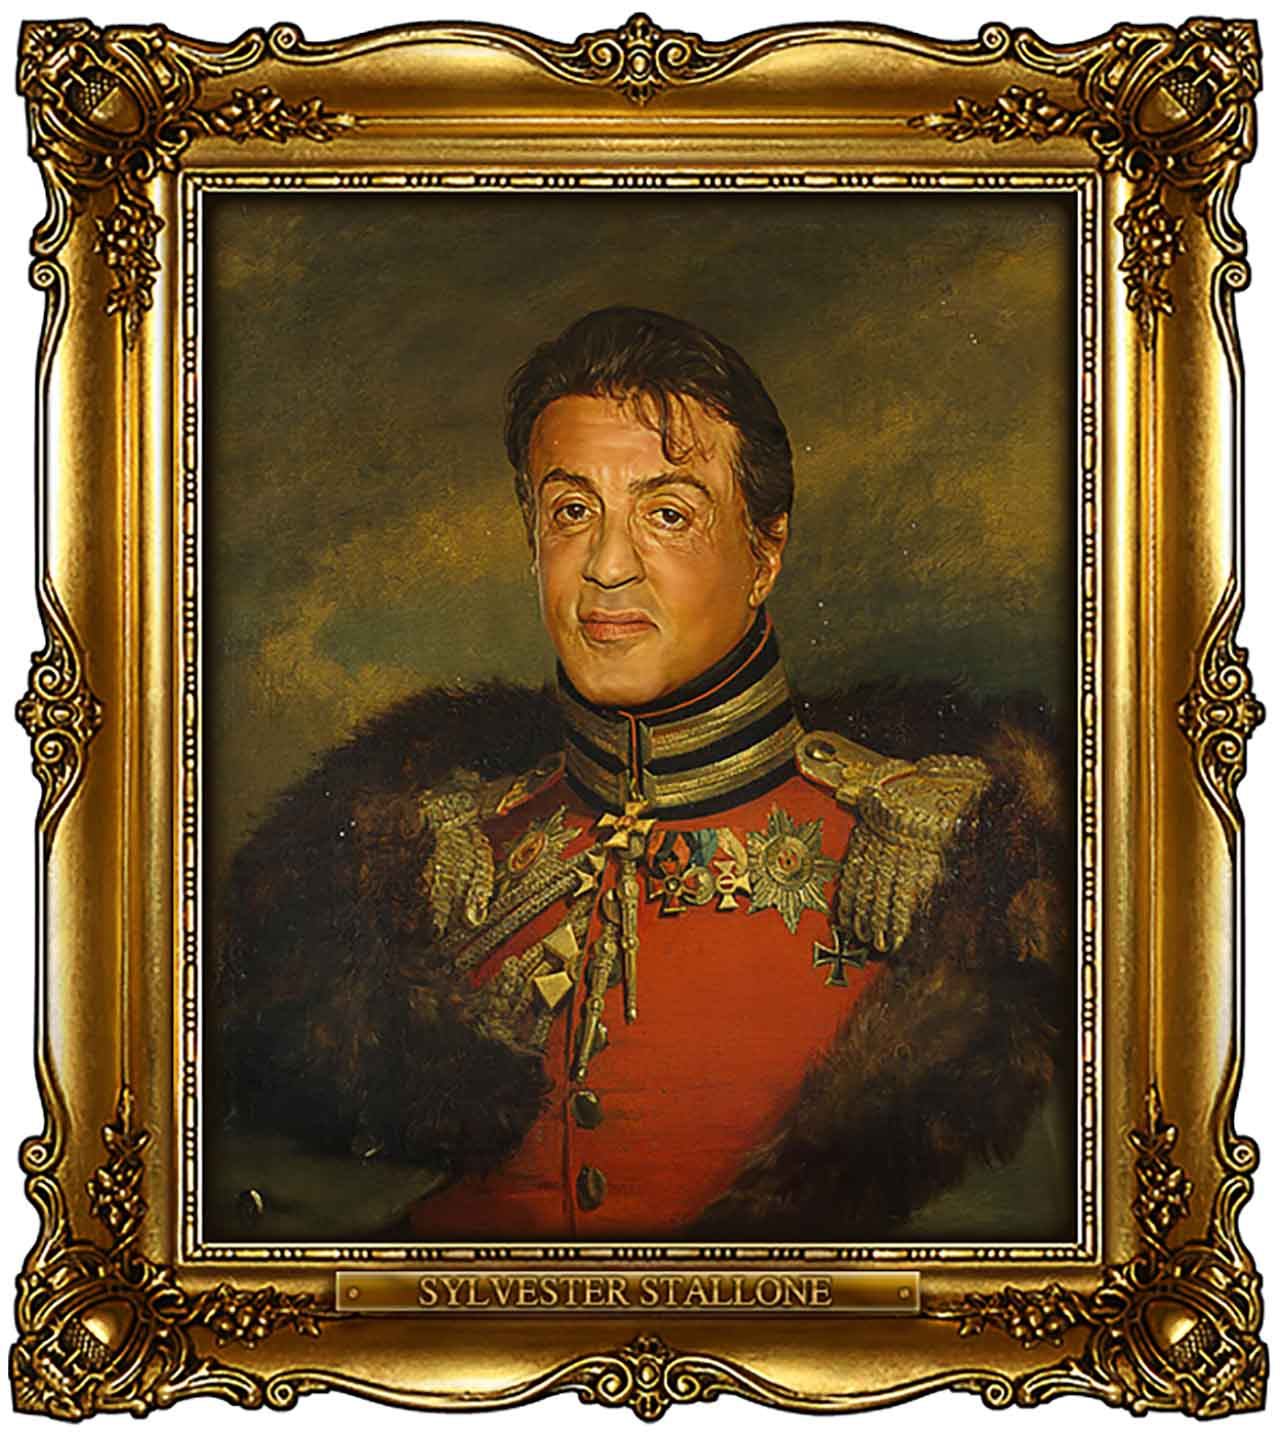 Artist Turns Famous Actors Into Russian Generals - Sylvester Stallone